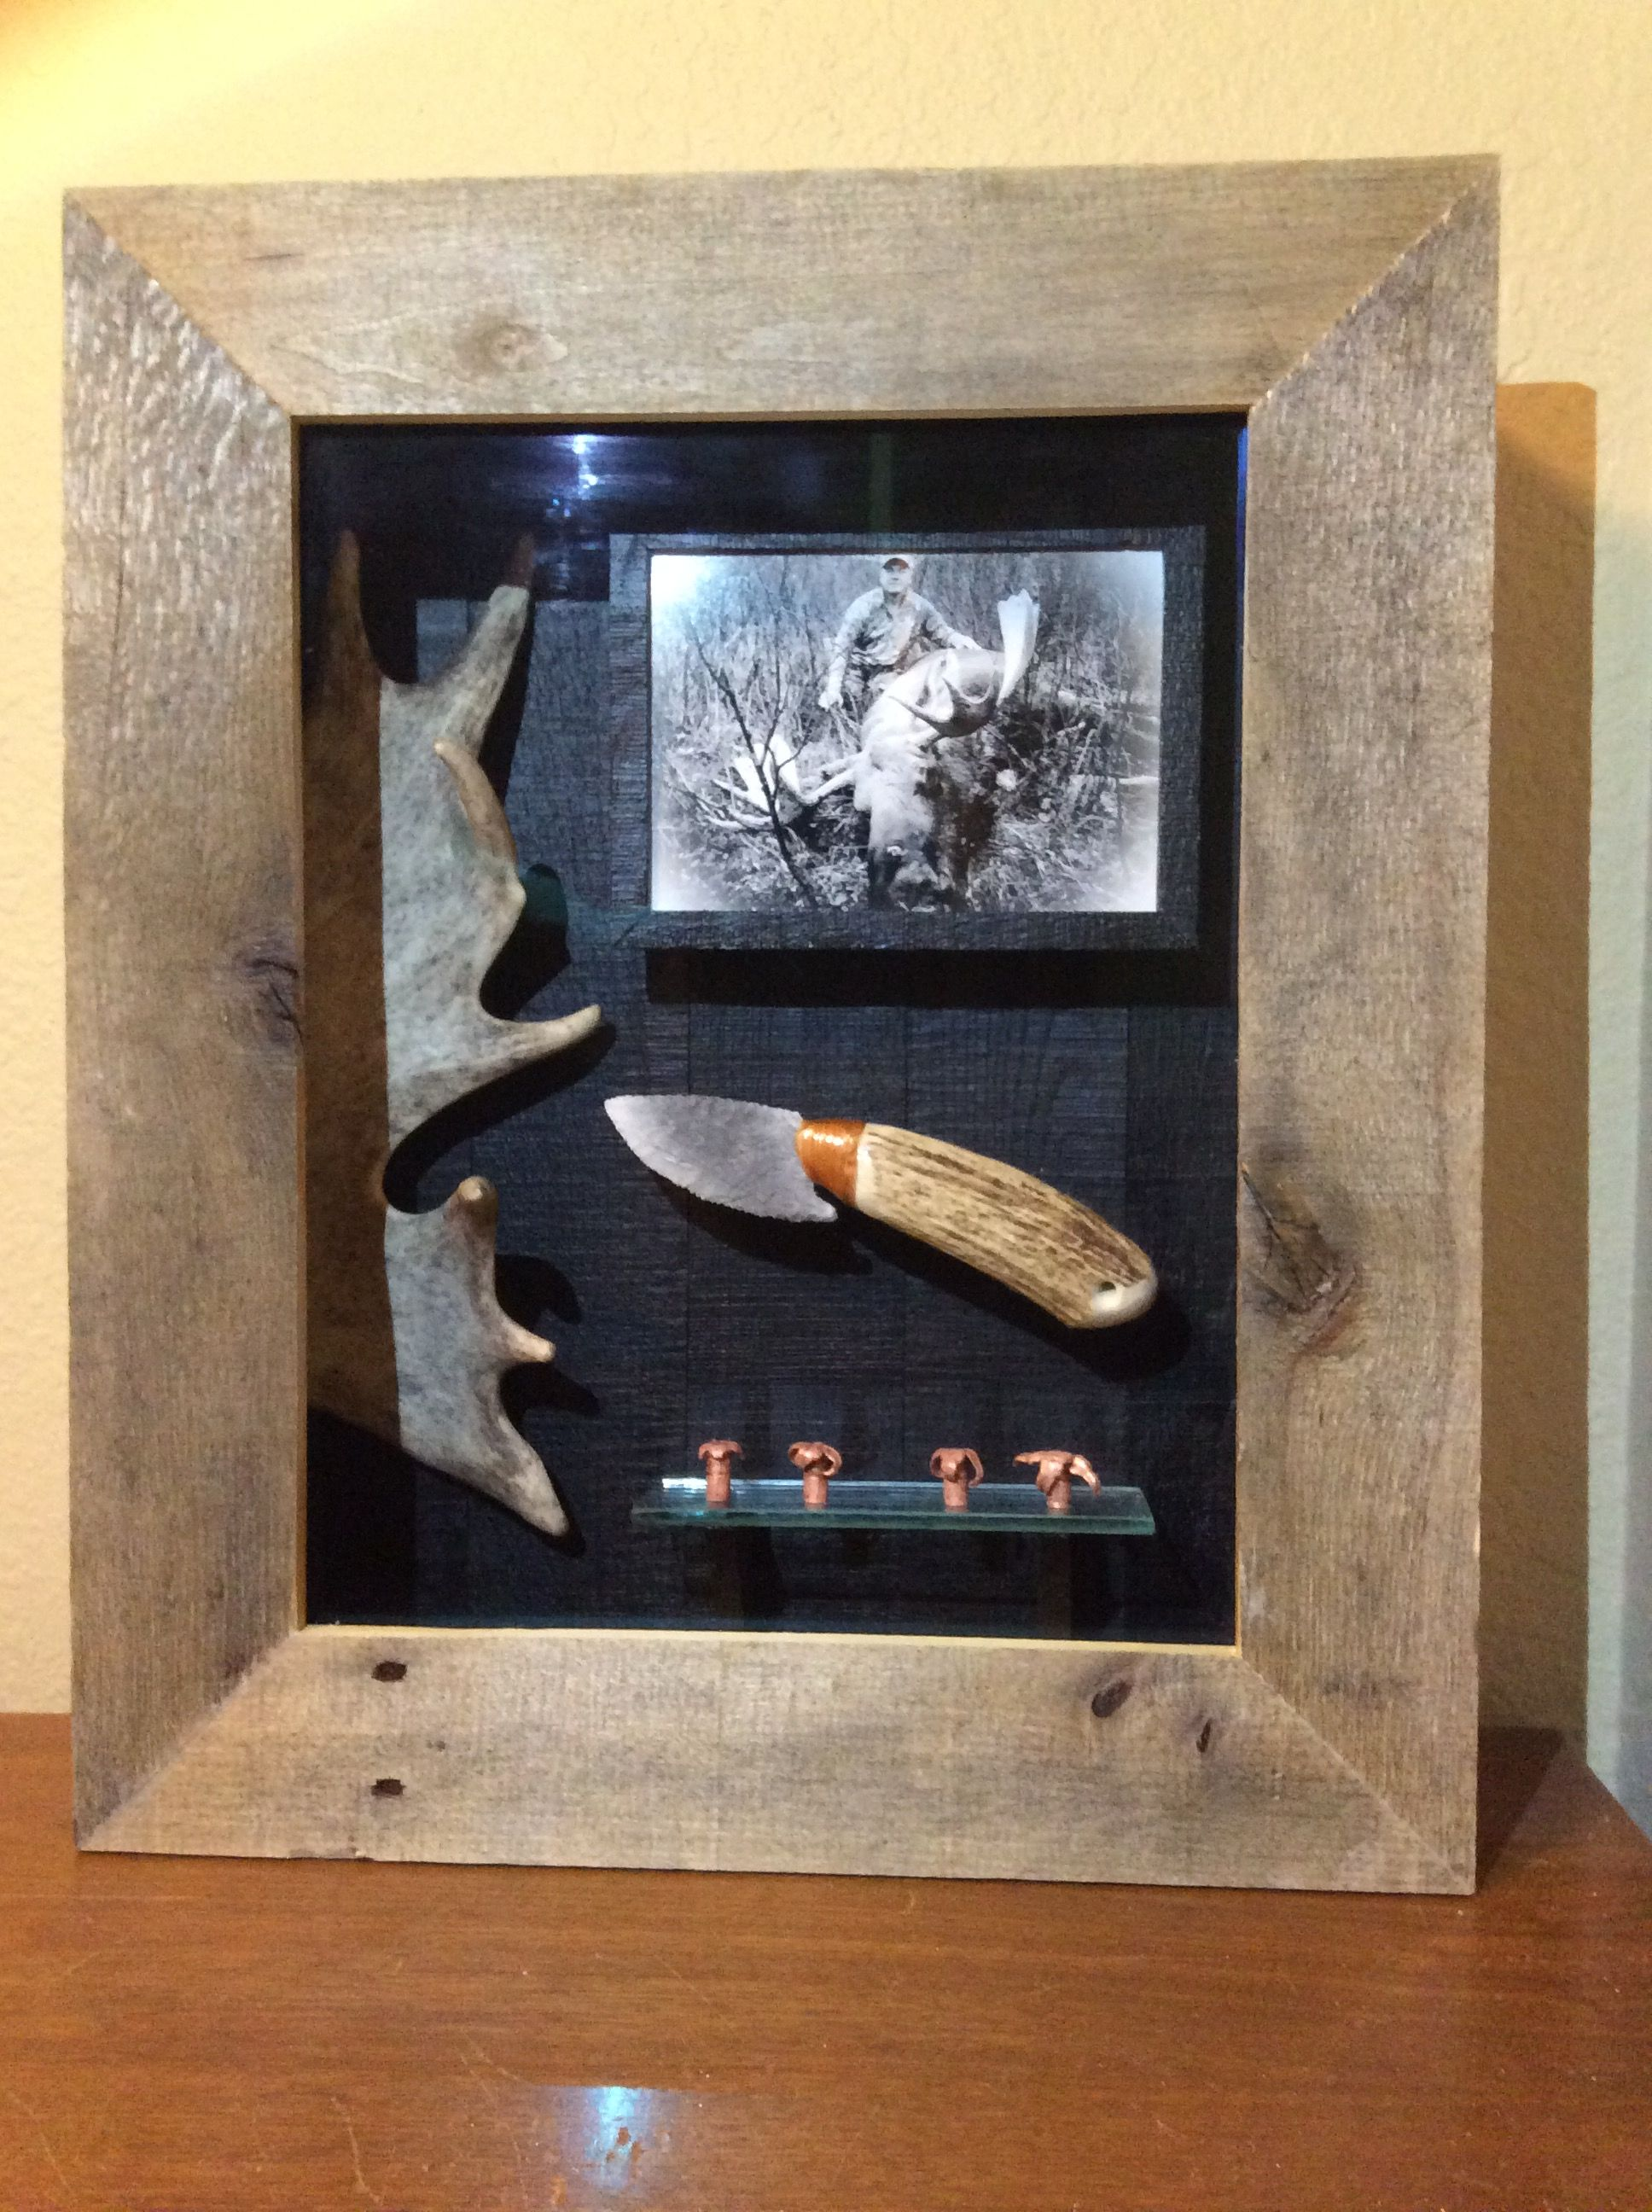 Shadow Box Handmade Knife Kh Caribou Shovel Shed Found While Hunting 4 Bullets Recovered From 4 Different Moose Pho Shadow Box Handmade Knives Shadow